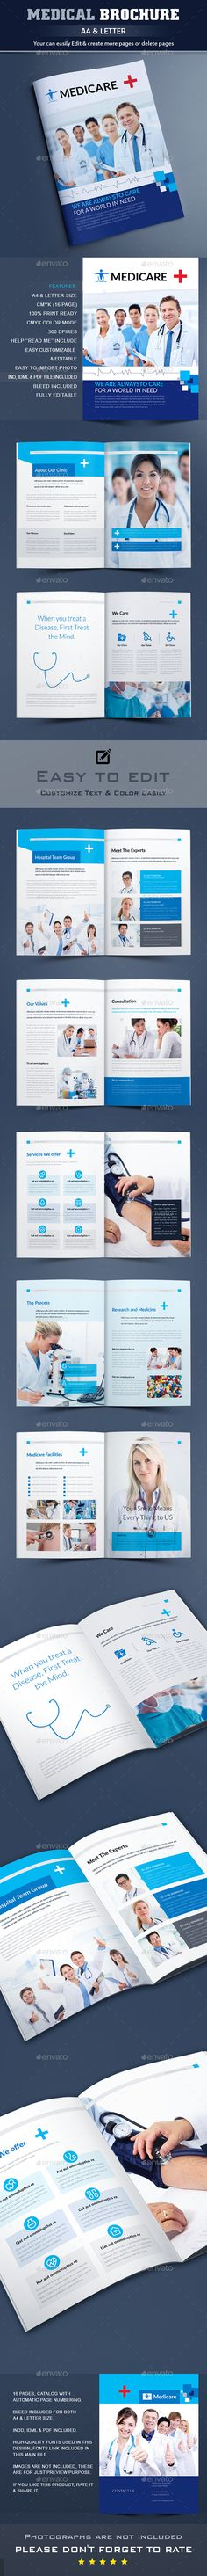 44 Best Brochure Images On Pinterest Flyer Design Brochure